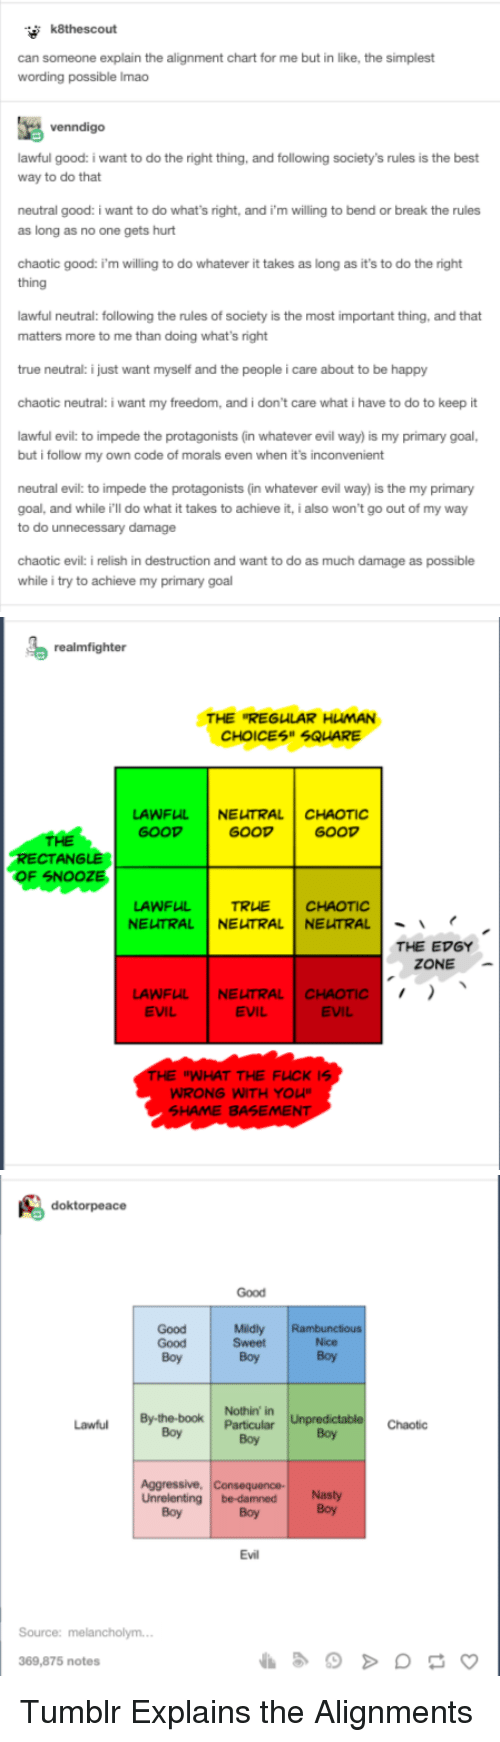 I Did The Alignment Myself: 25+ Best Memes About Lawful Neutral Chaotic